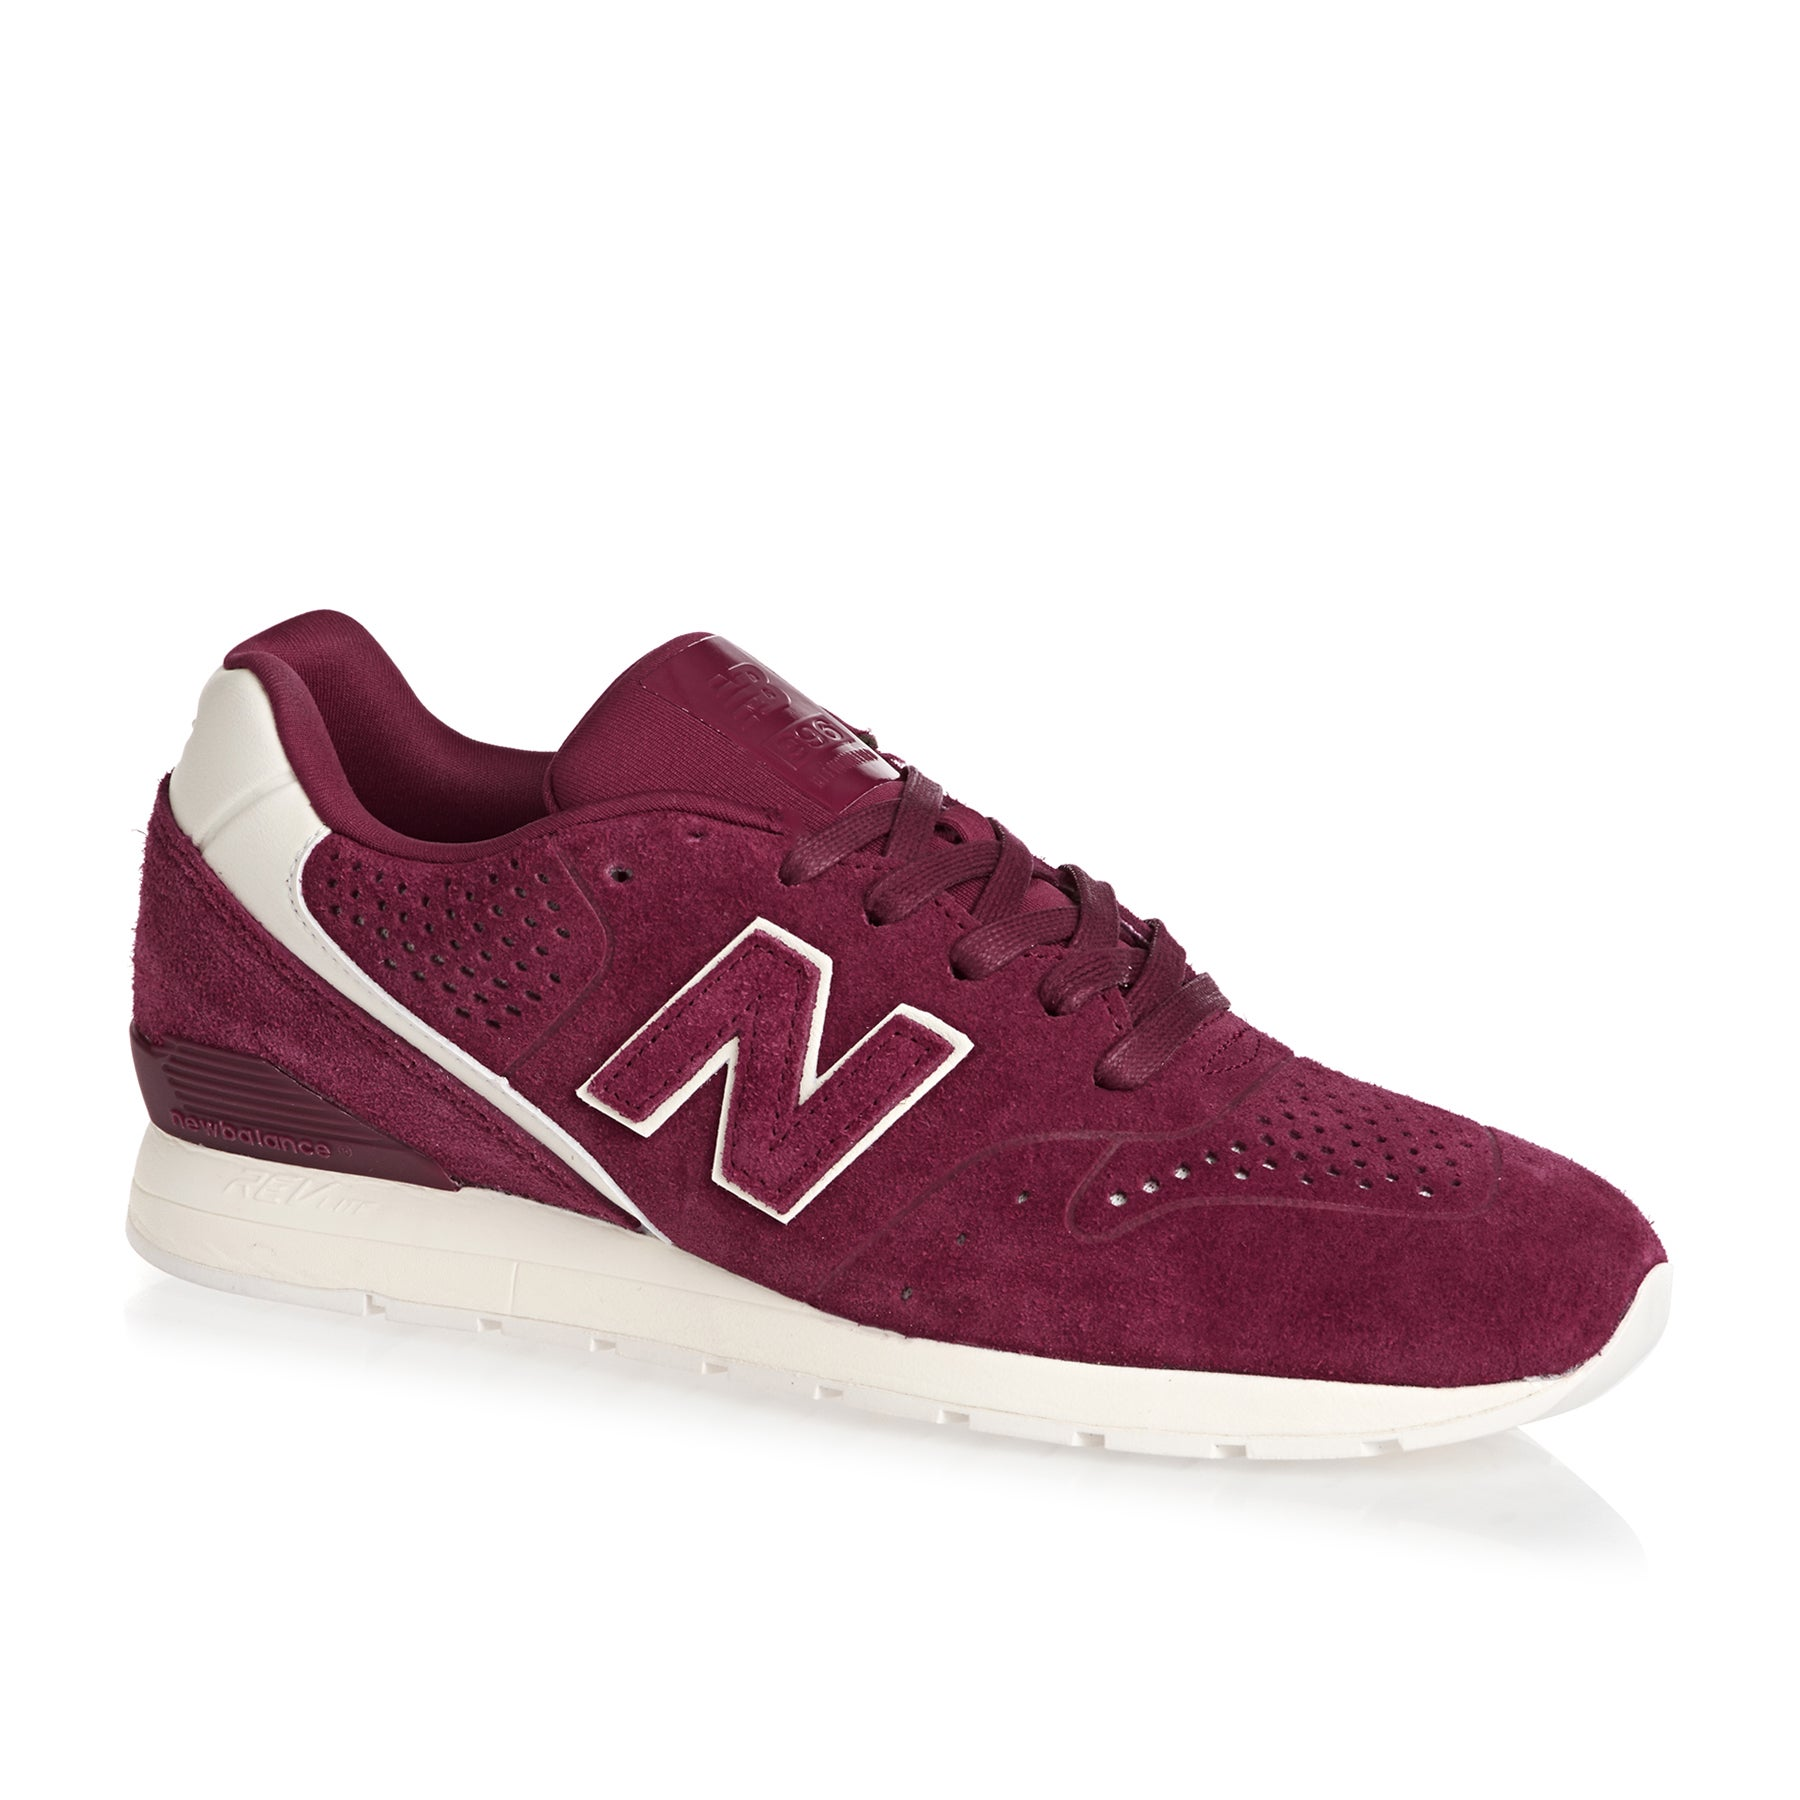 New Balance Mrl996 Shoes - Red Wine